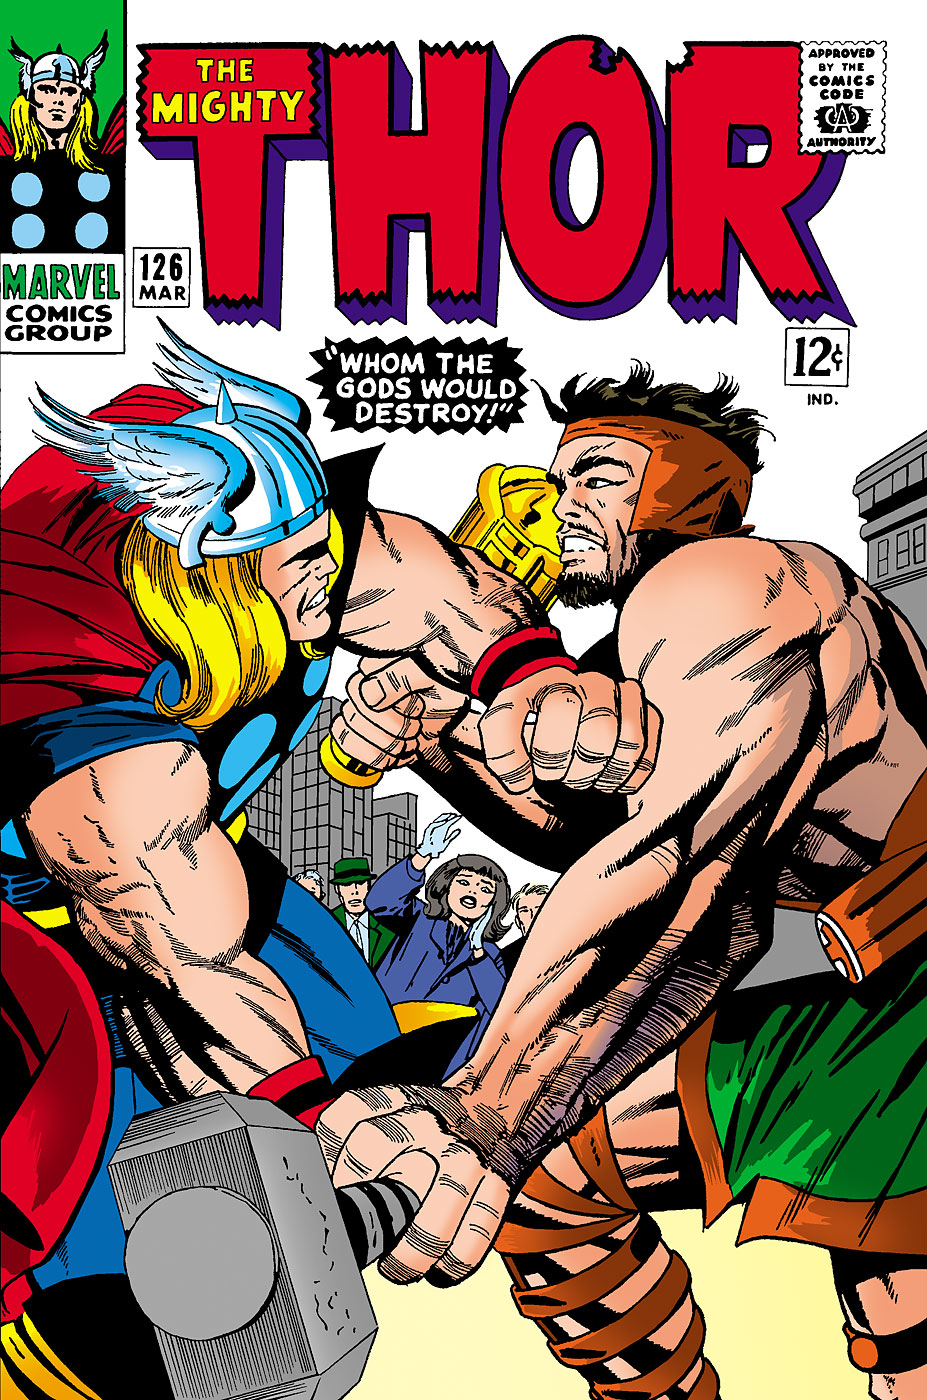 In 1966, the series <i>Journey into Mystery</i> where Thor originally debuted was retitled to <i>The Mighty Thor</i>, giving the hero his own eponymous comic.